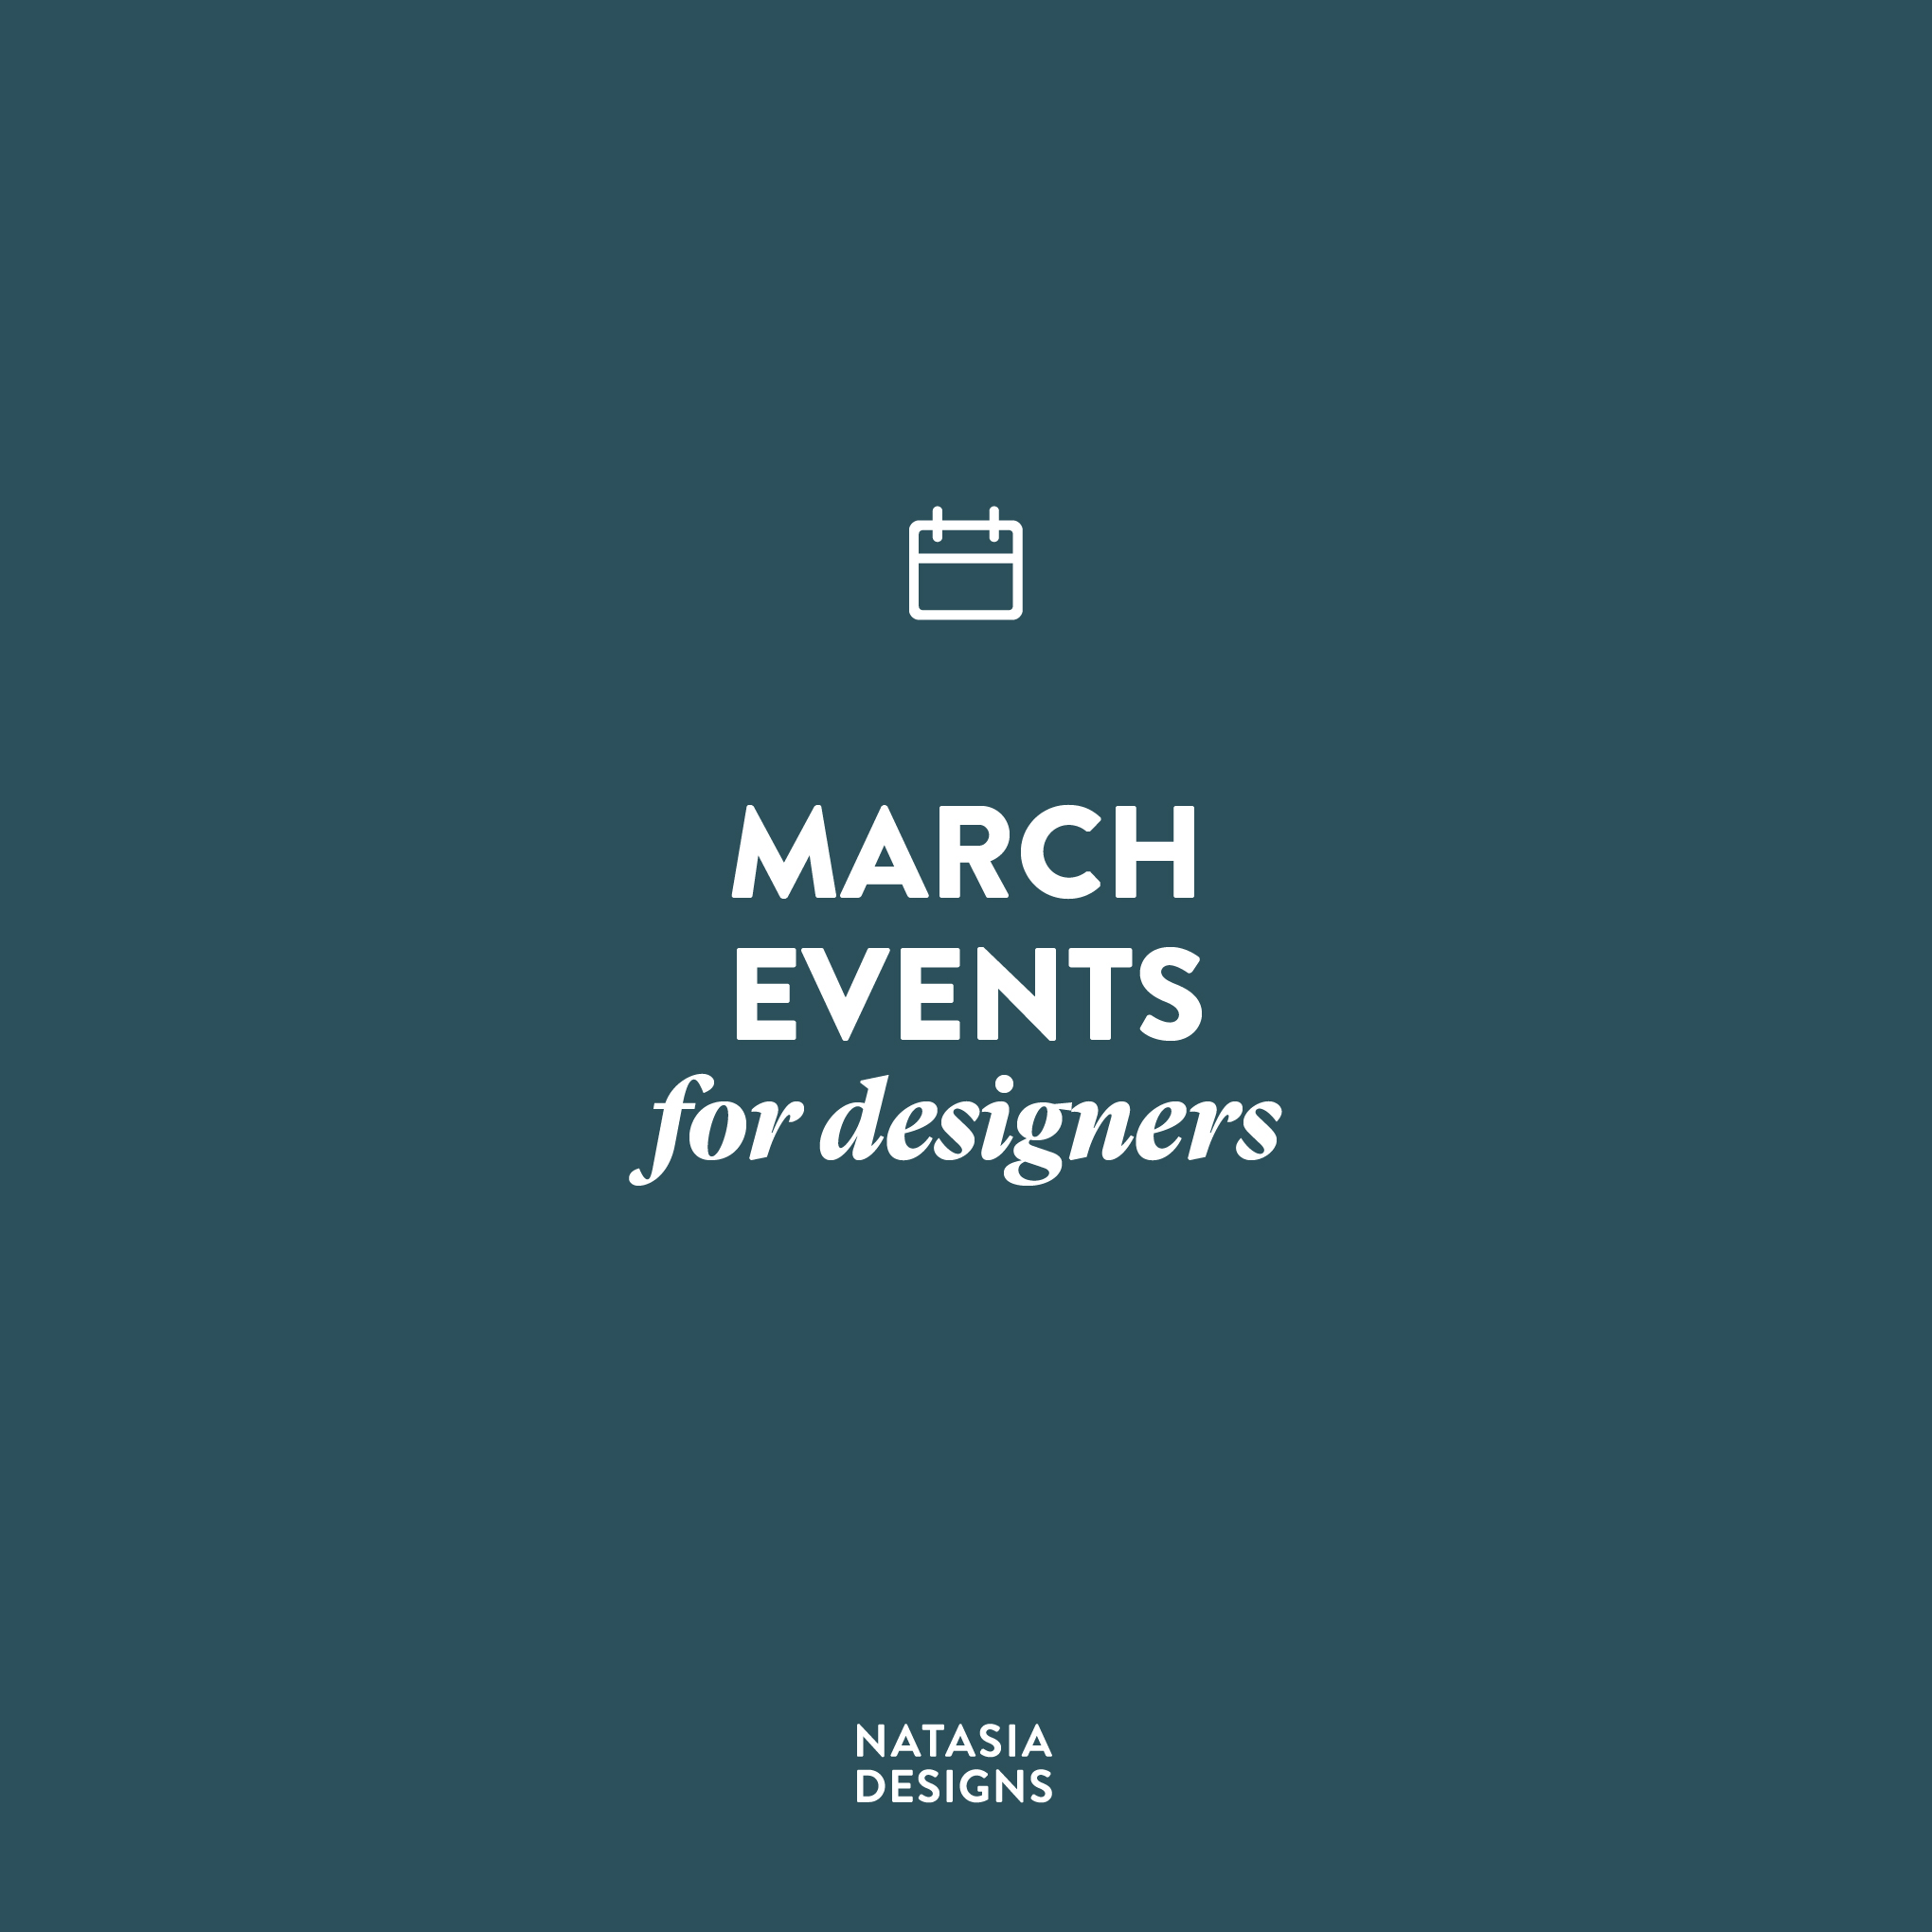 Natasia Designs Edmonton Events Meetups Creative Graphic Designer Design Alberta Website Design Marketing Creative UX Web